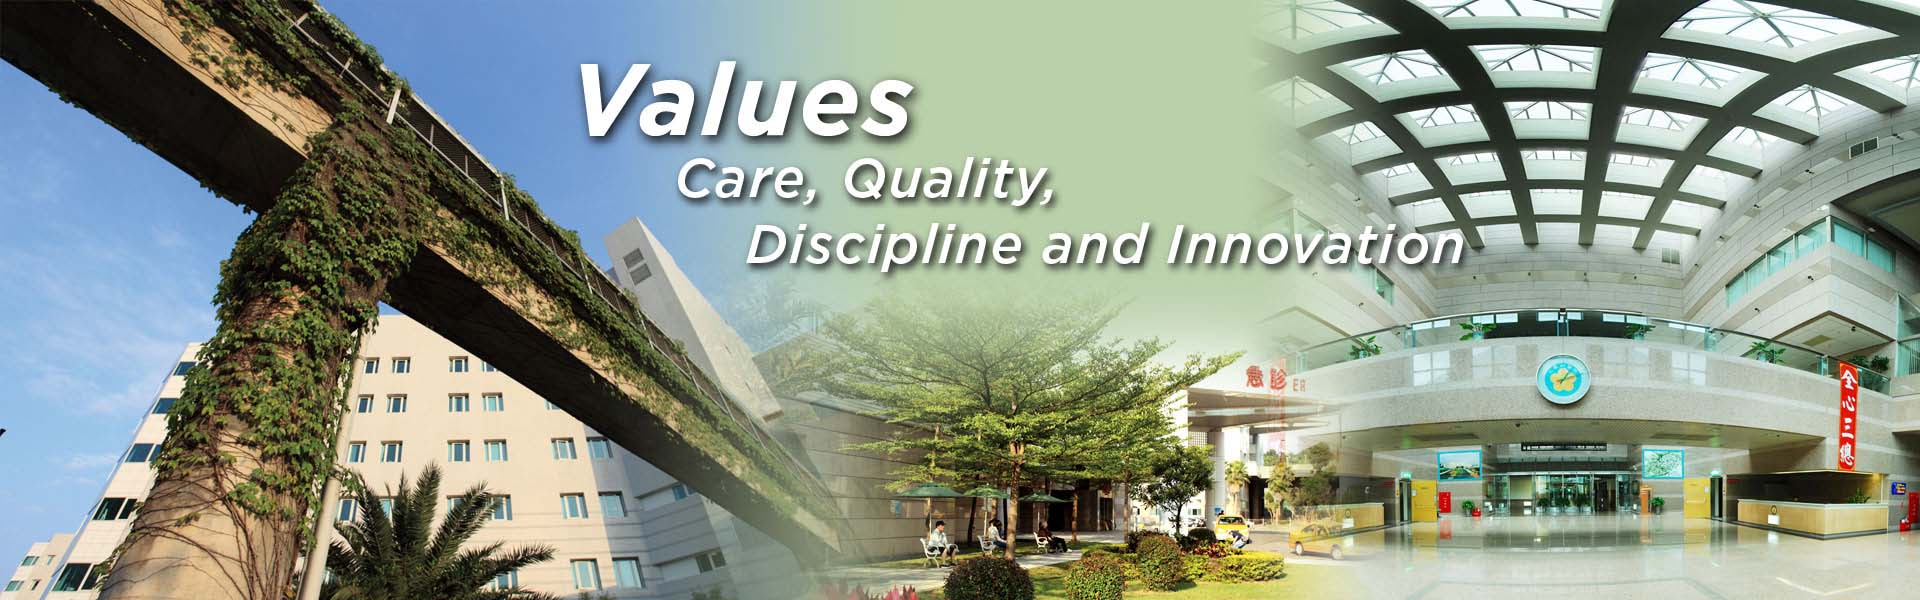 Values_Care_Quality_Discipline_and_Innovation